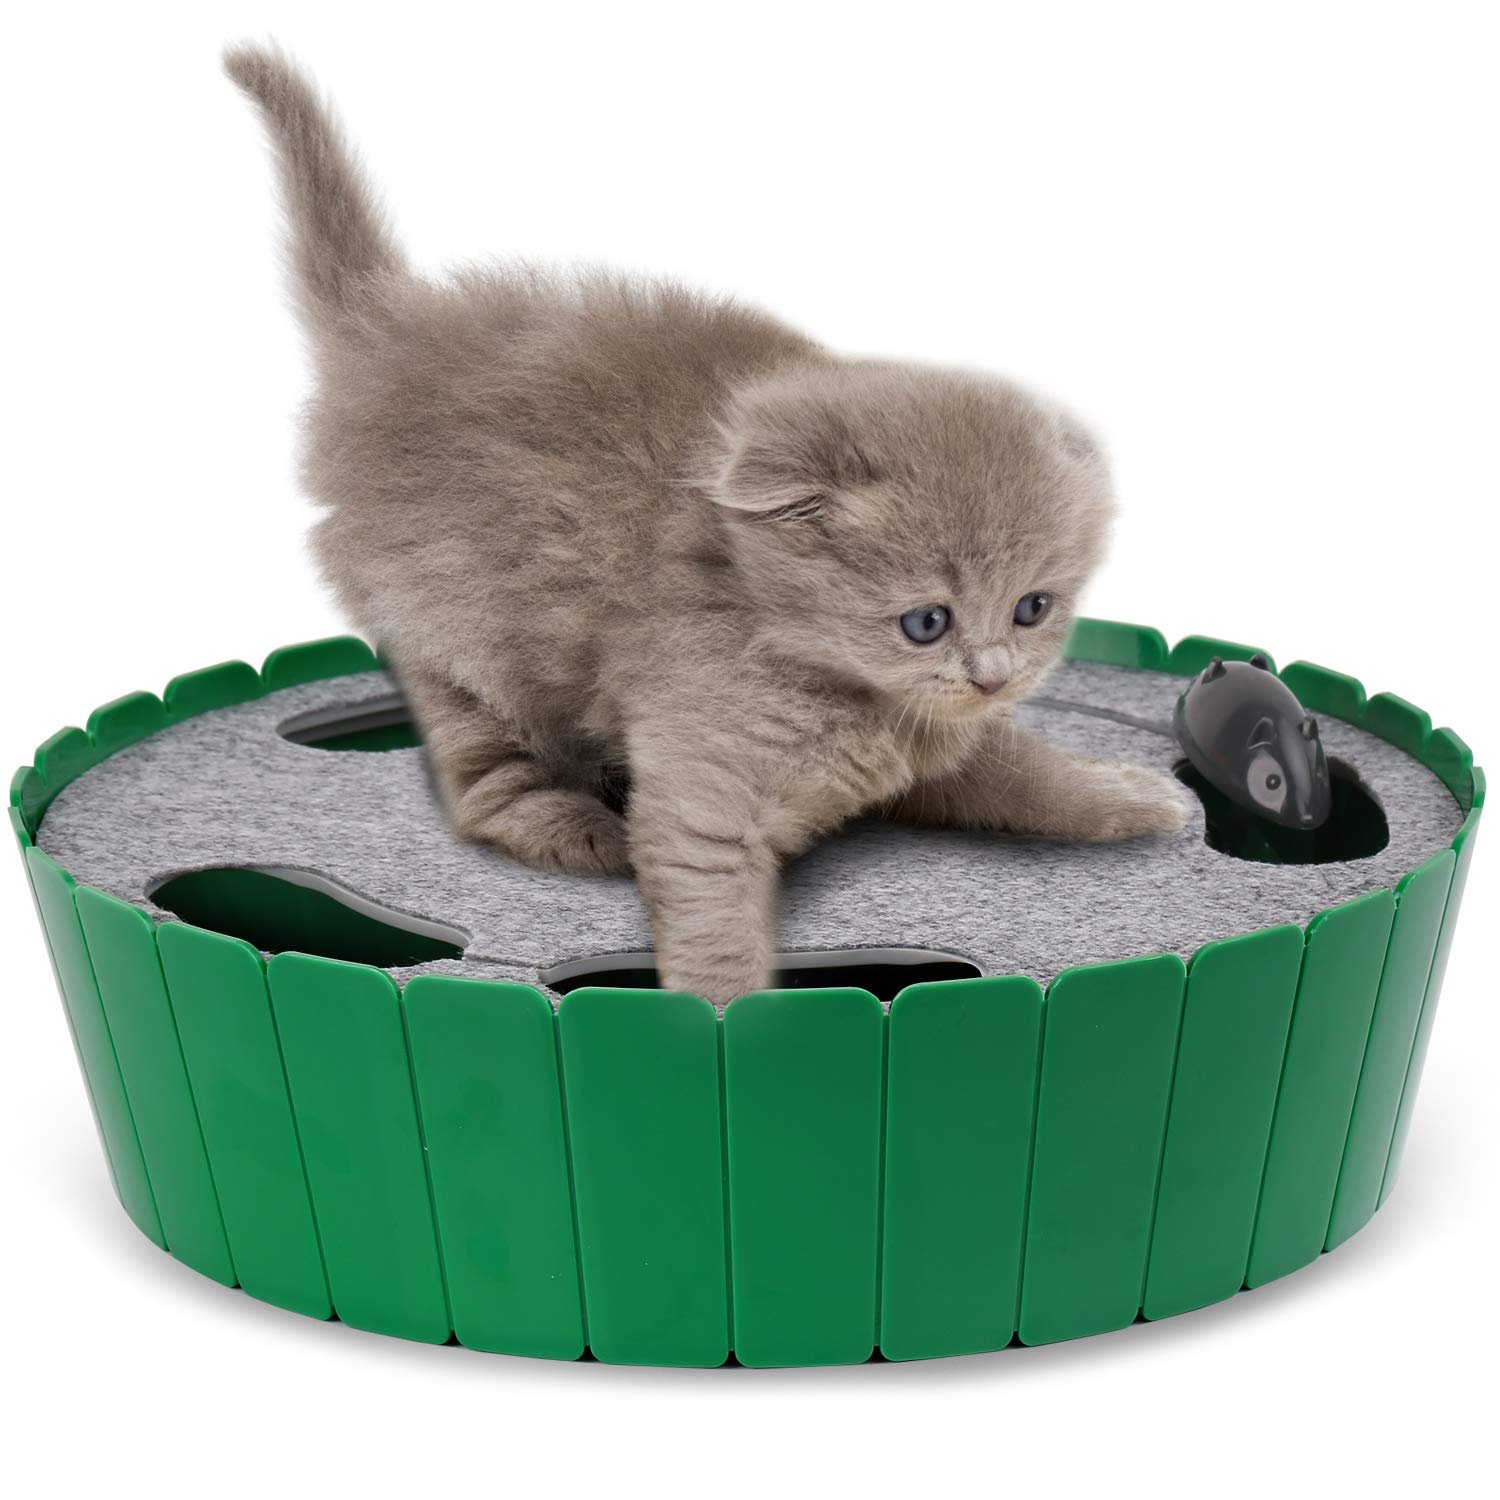 PAWABOO Pet Teasing Toy, Hide and Seek Electronic Mouse Hunt Interactive Cat Toy, Green by PAWABOO